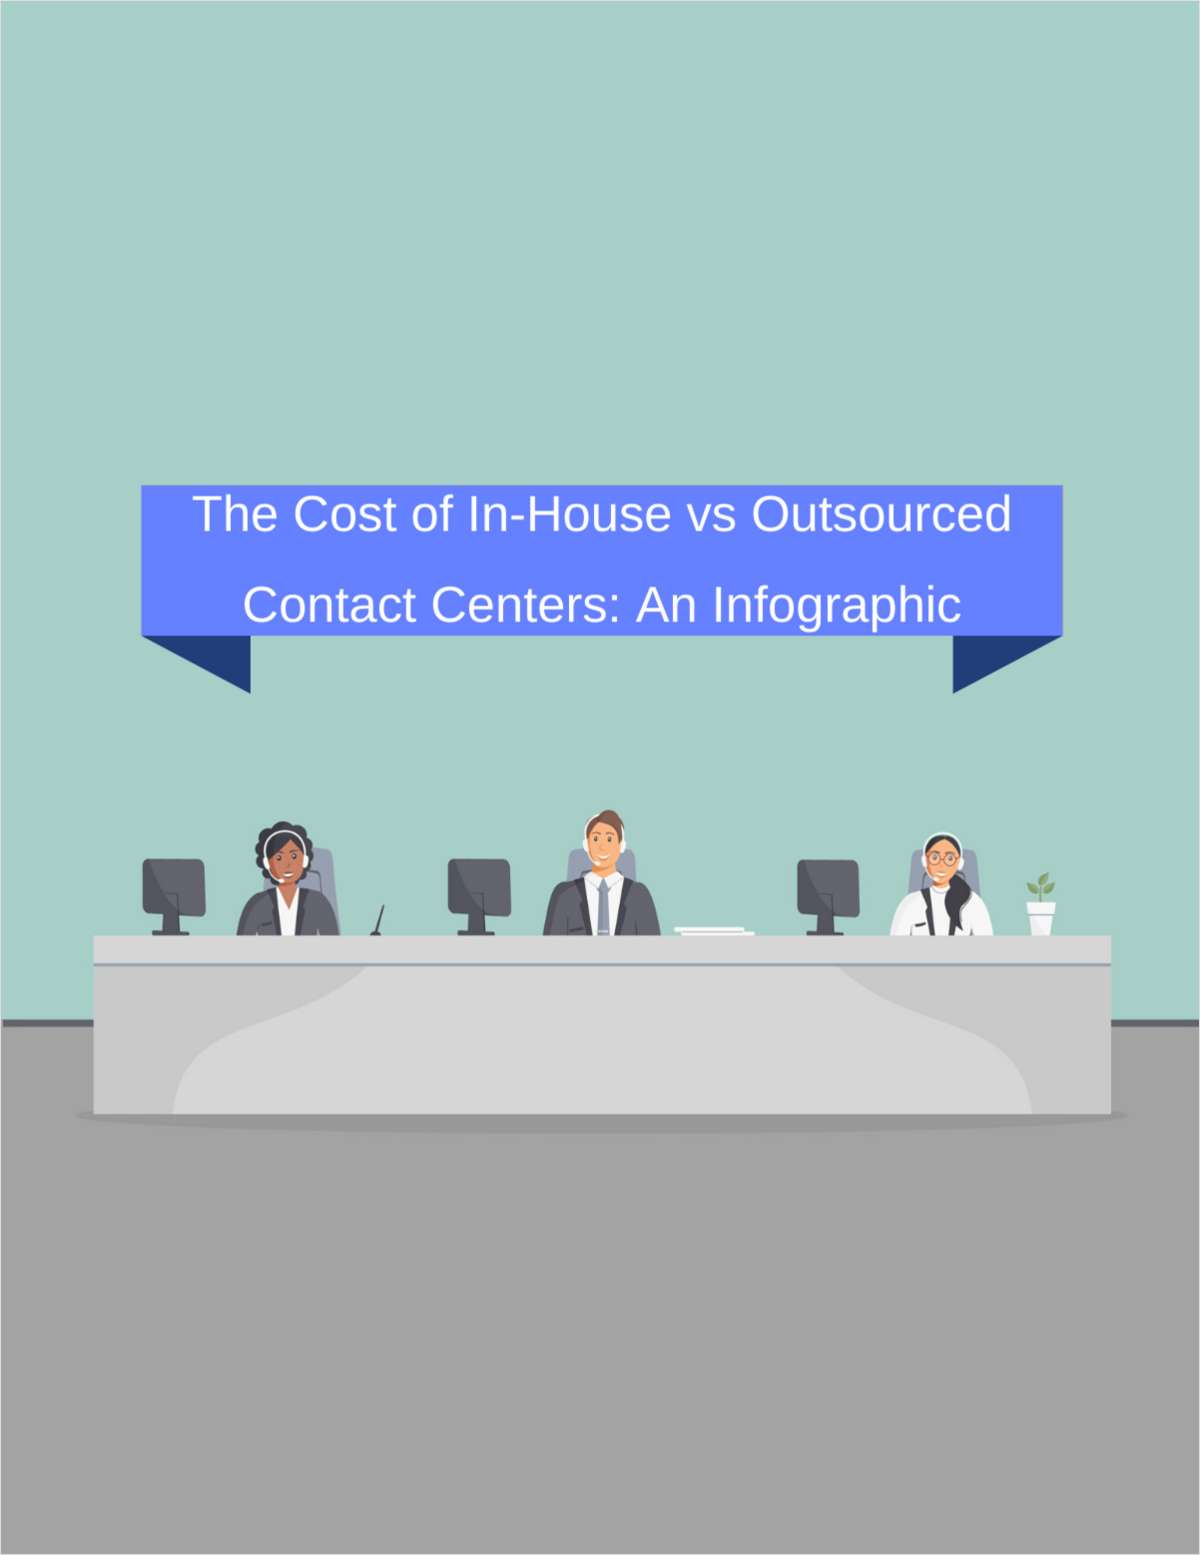 The Cost of In-House vs Outsourced Contact Centers: An Infographic